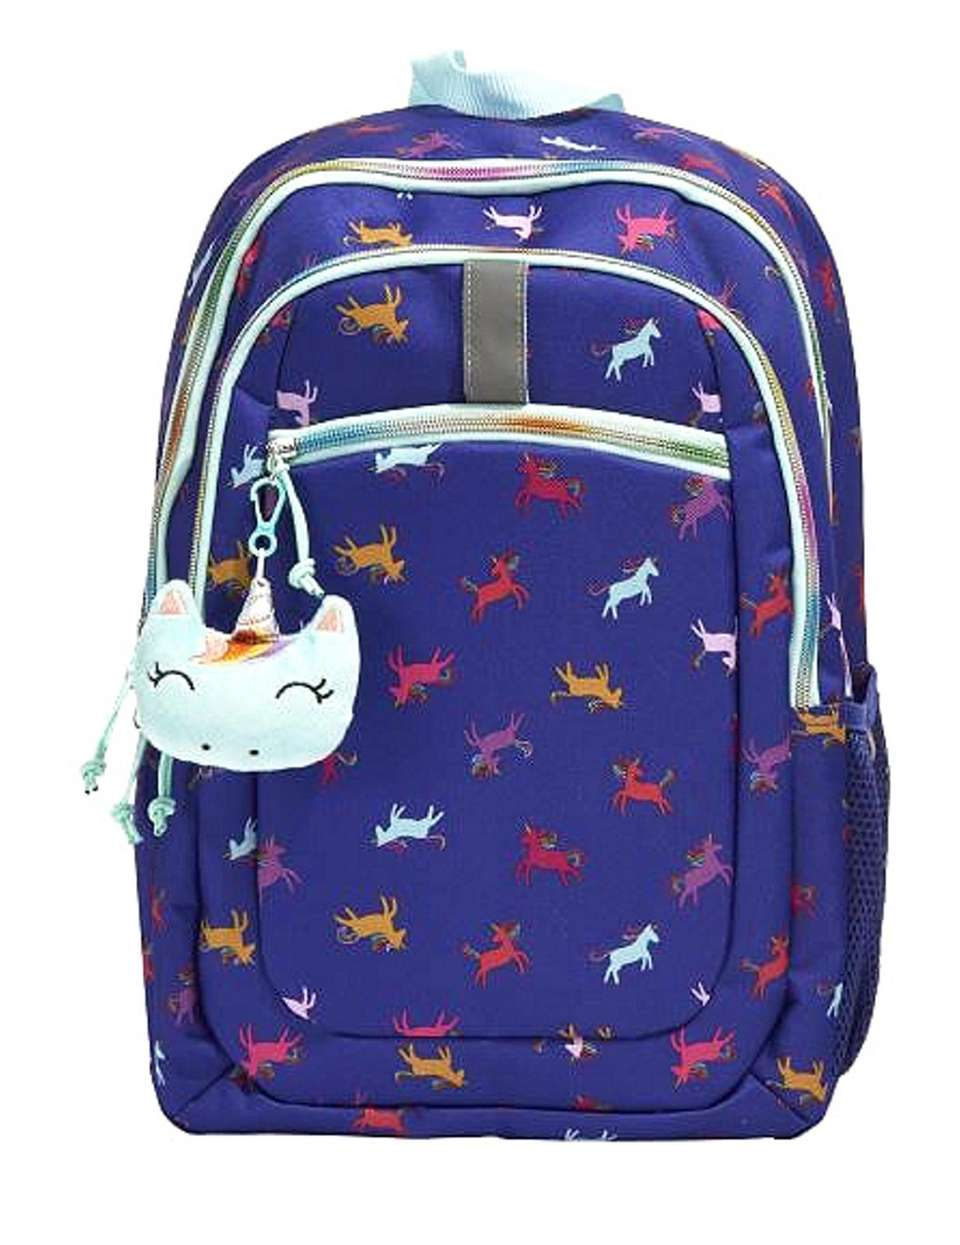 With prancing unicorns dancing all over the bag,